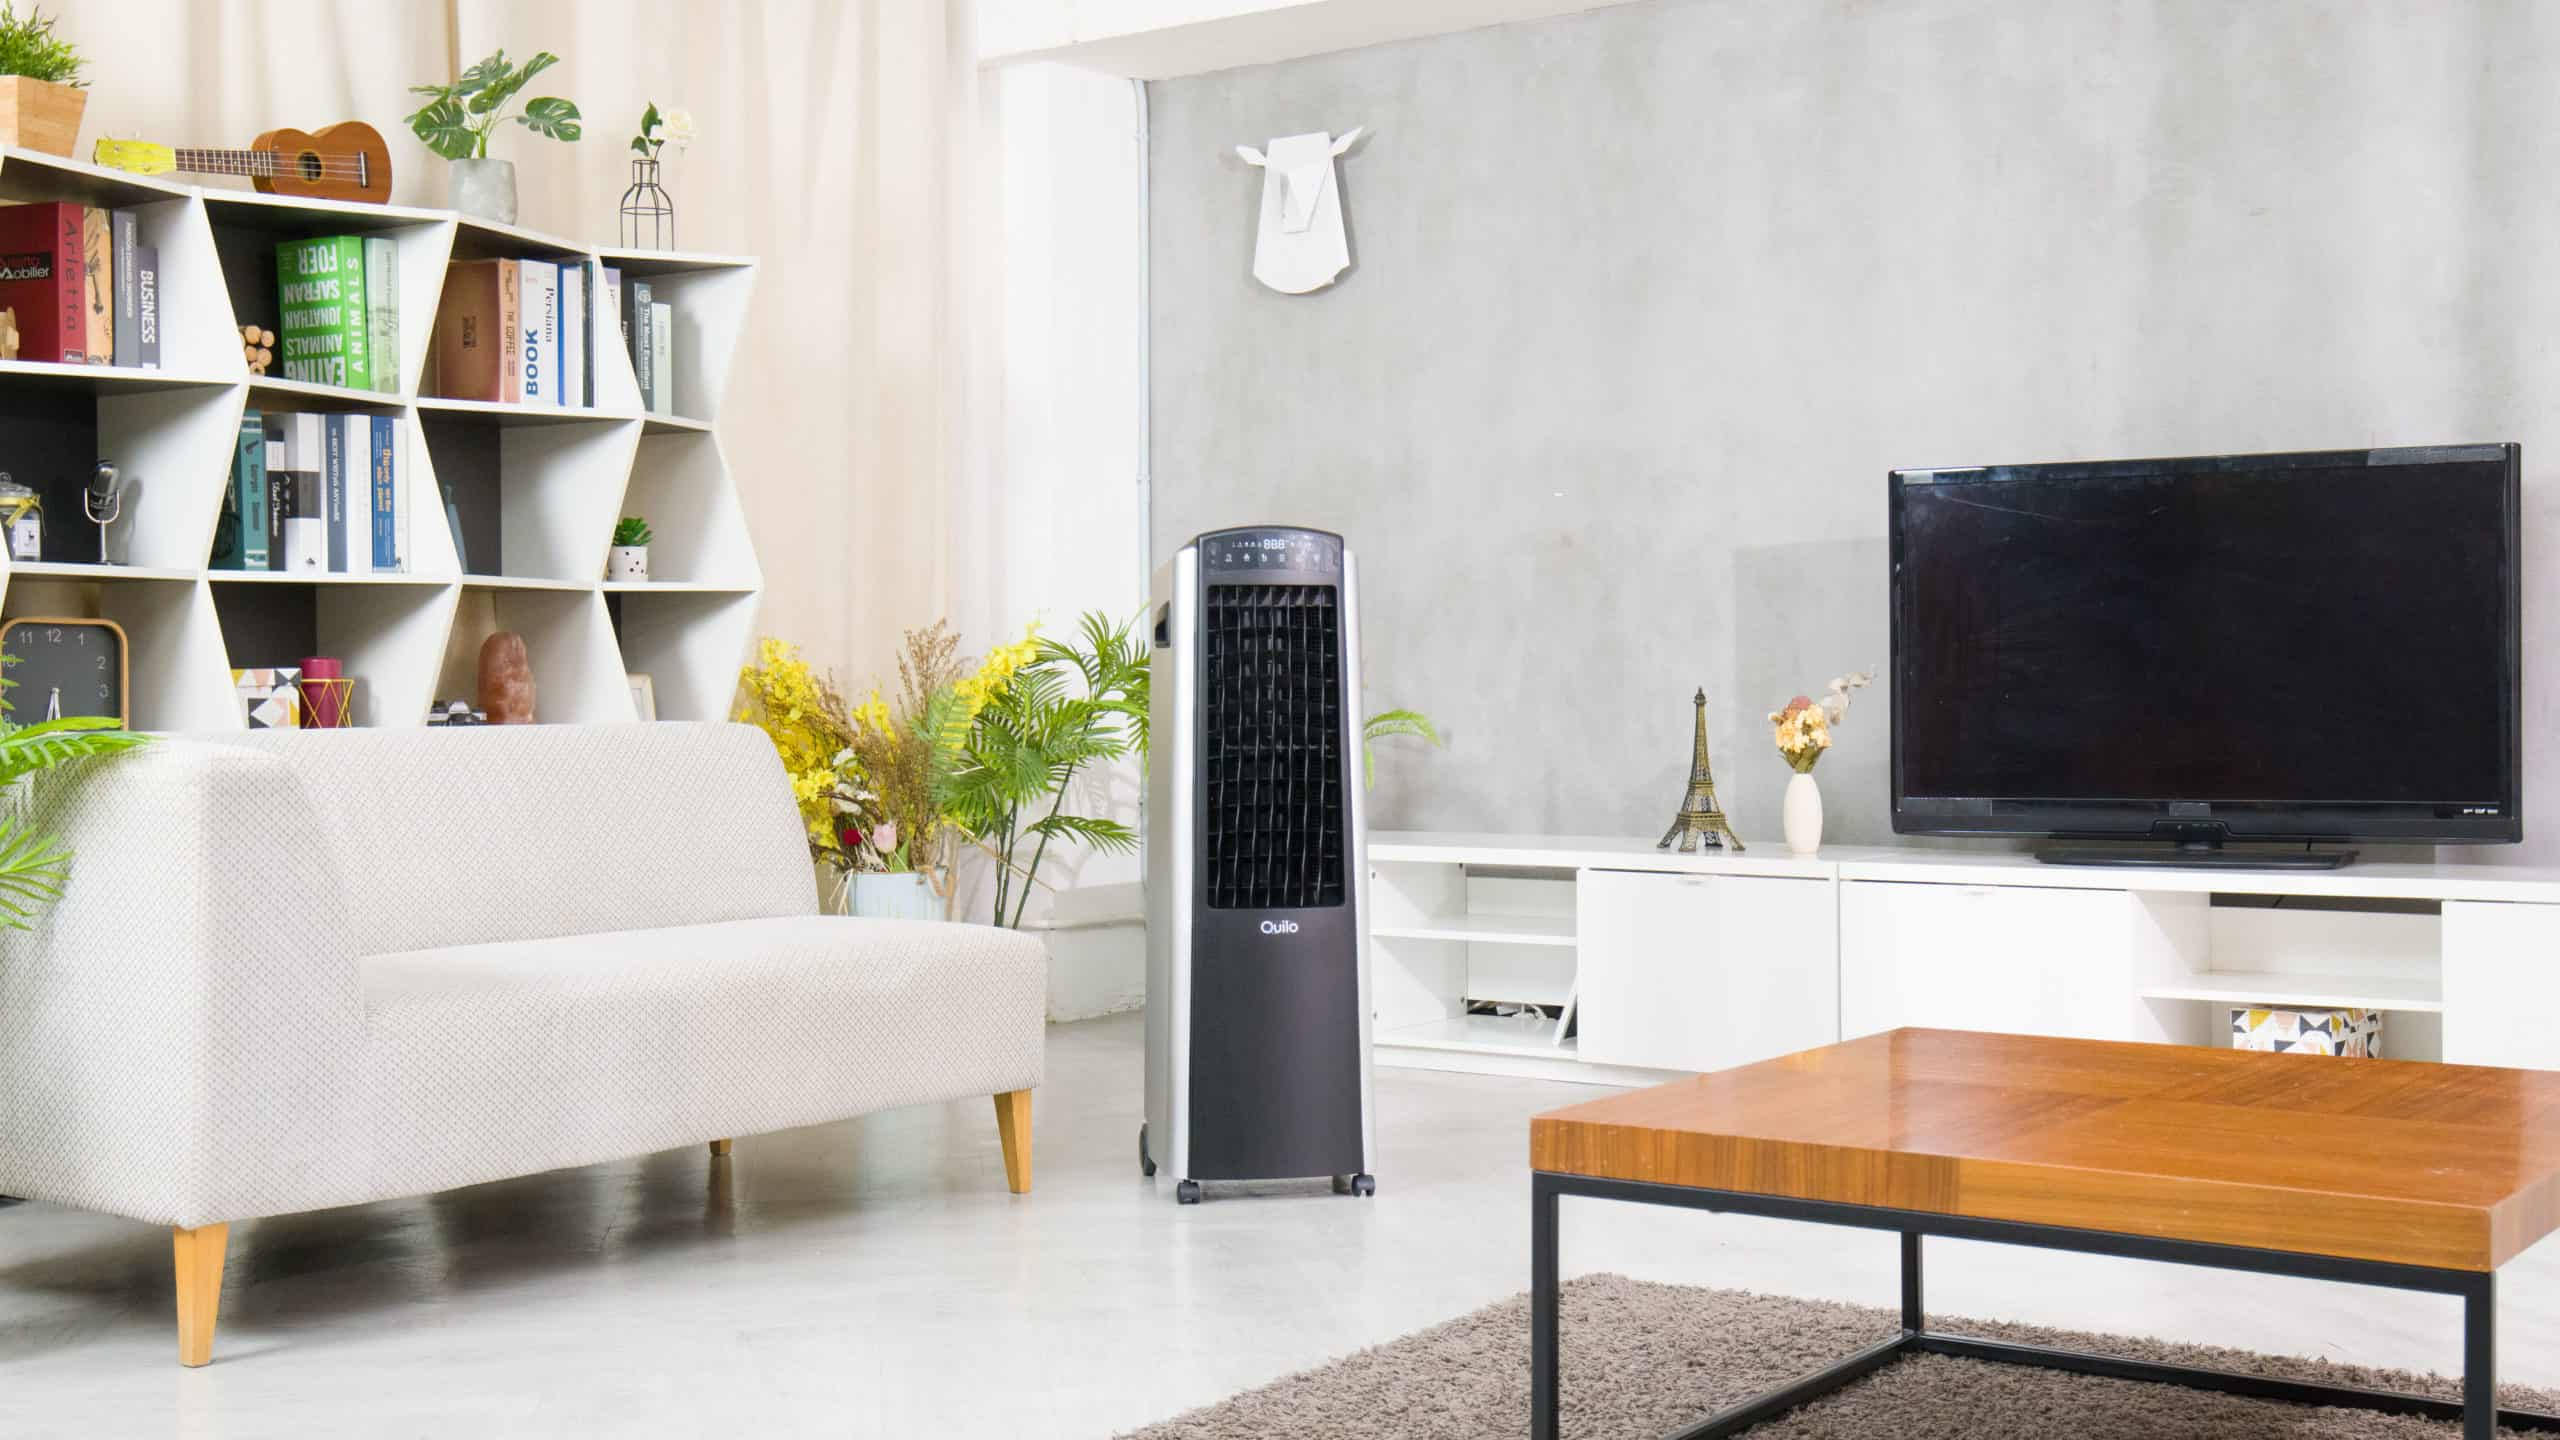 Quilo Aviance: An All Seasons Air Climatizer